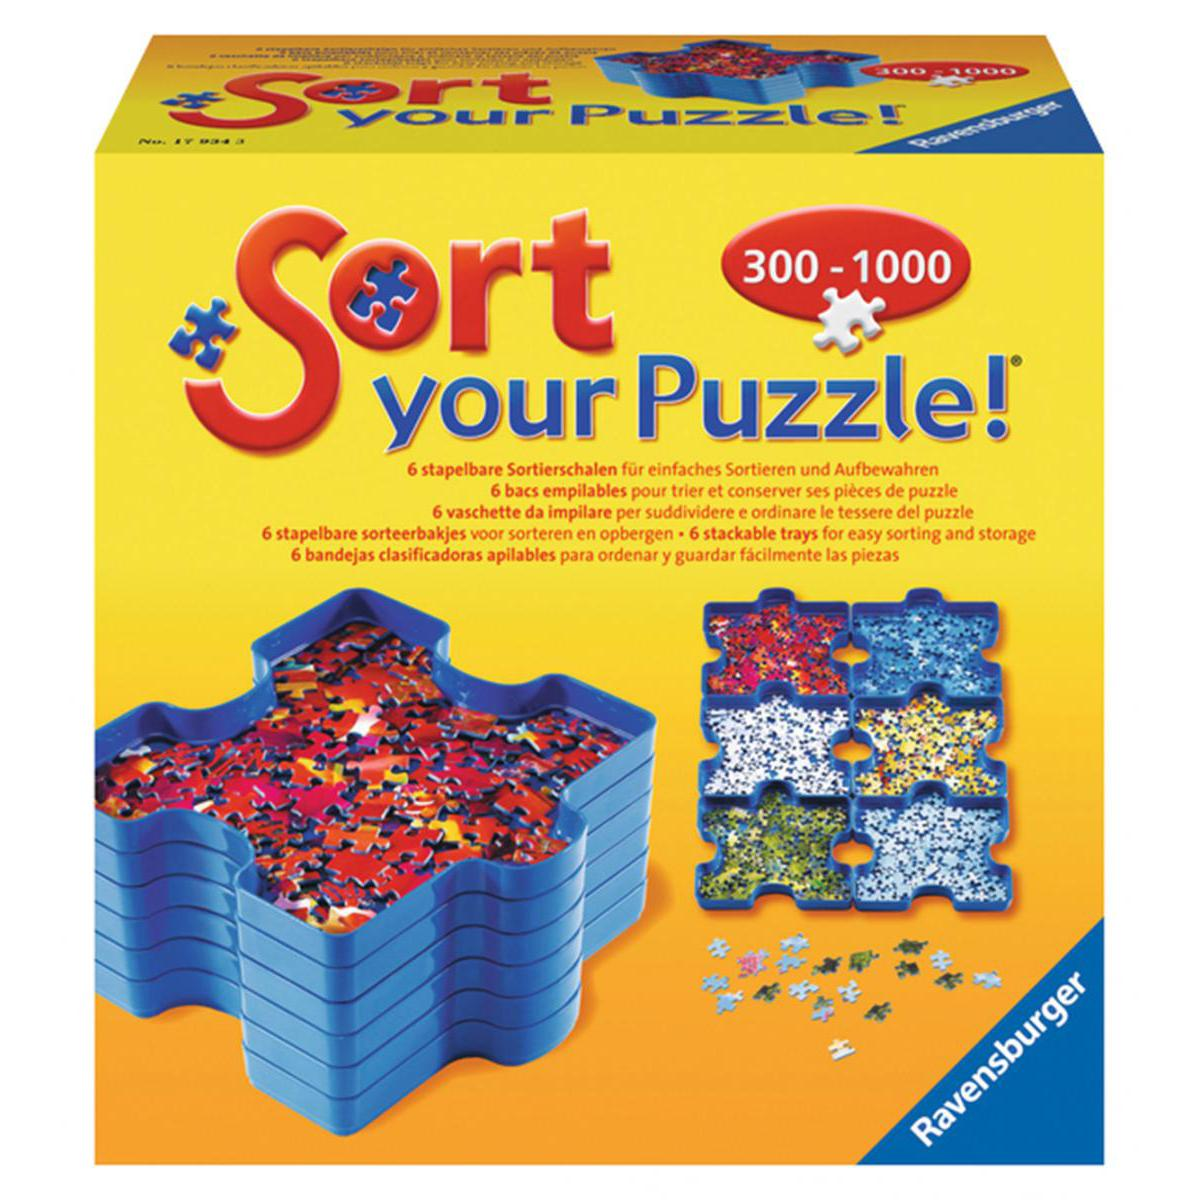 Bacs Sort Your Puzzle!®